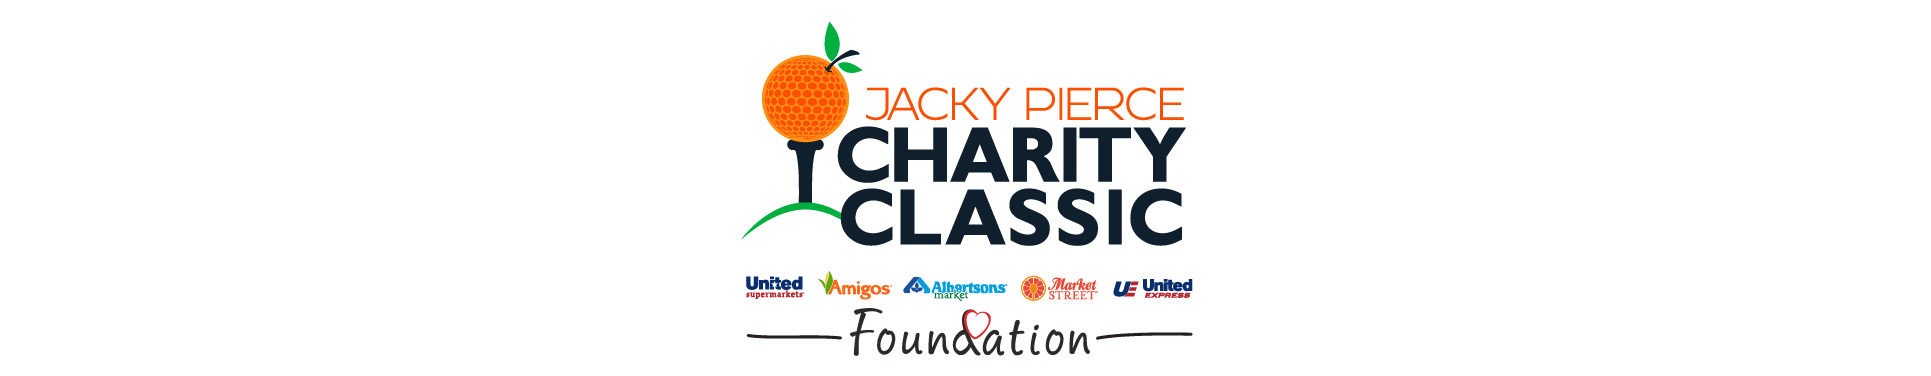 2019 Jacky Pierce Charity Classic